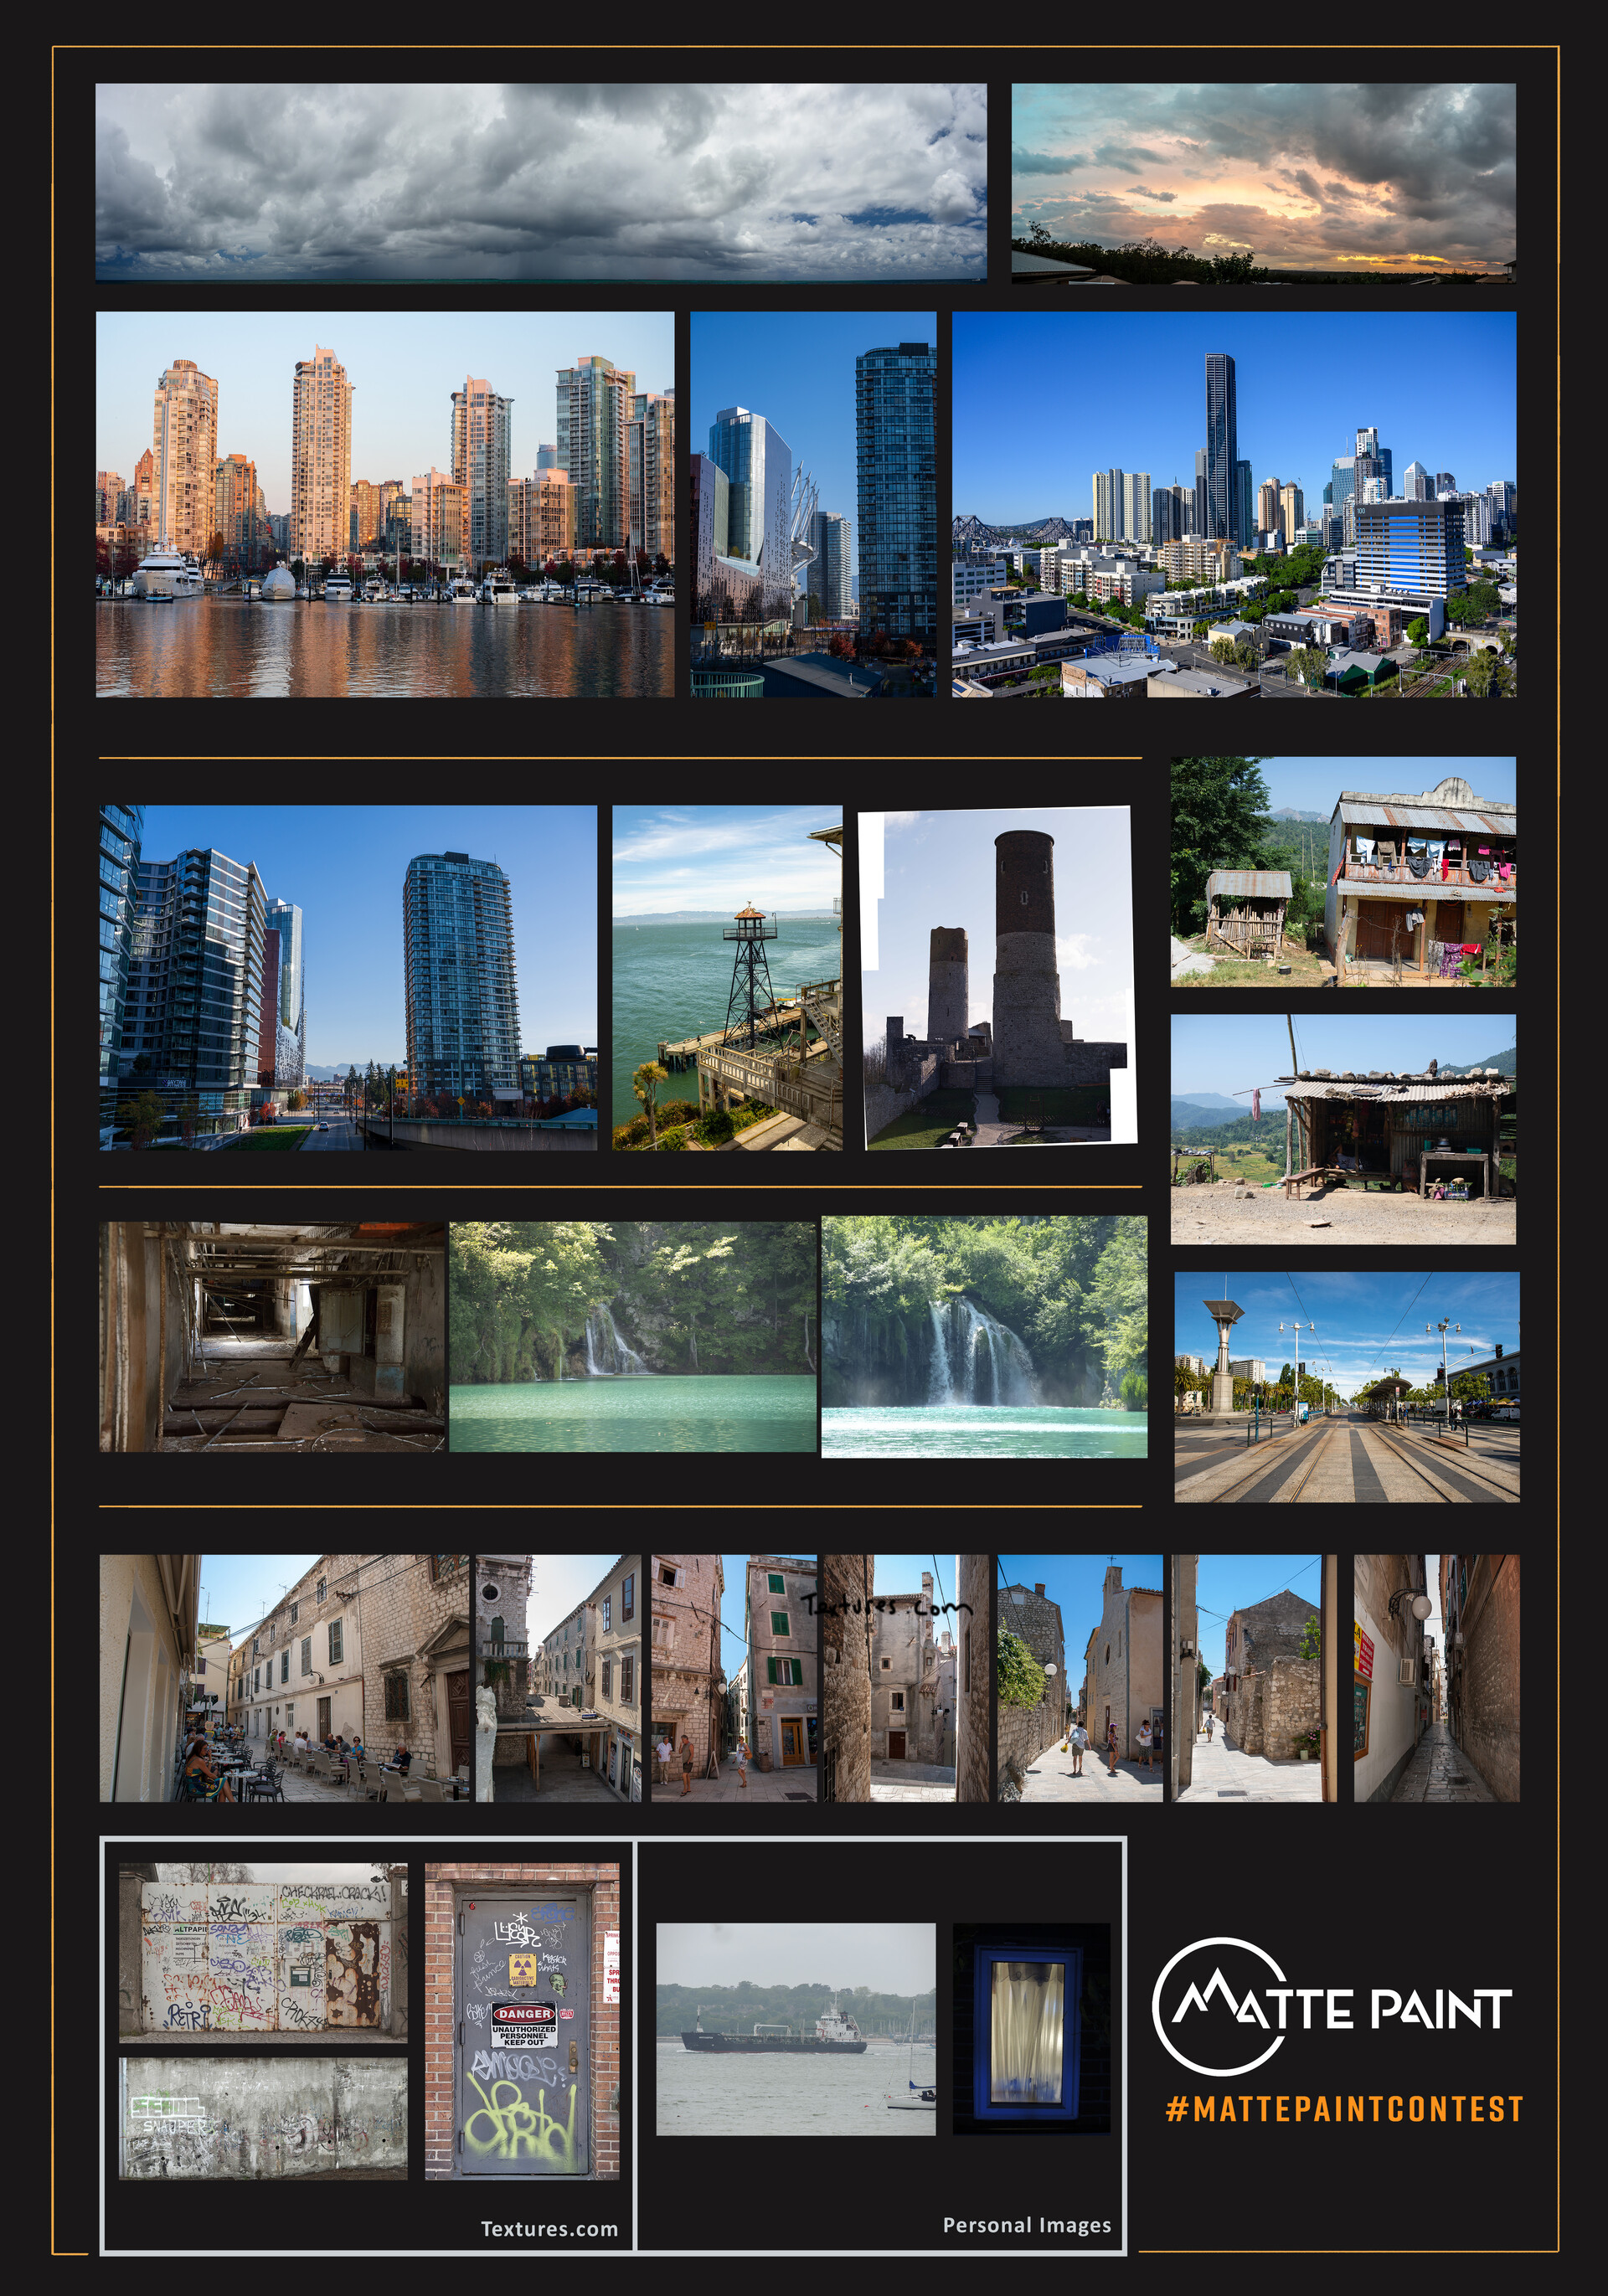 Composite Sheet - Except where stated otherwise, all images from MattePaint.com